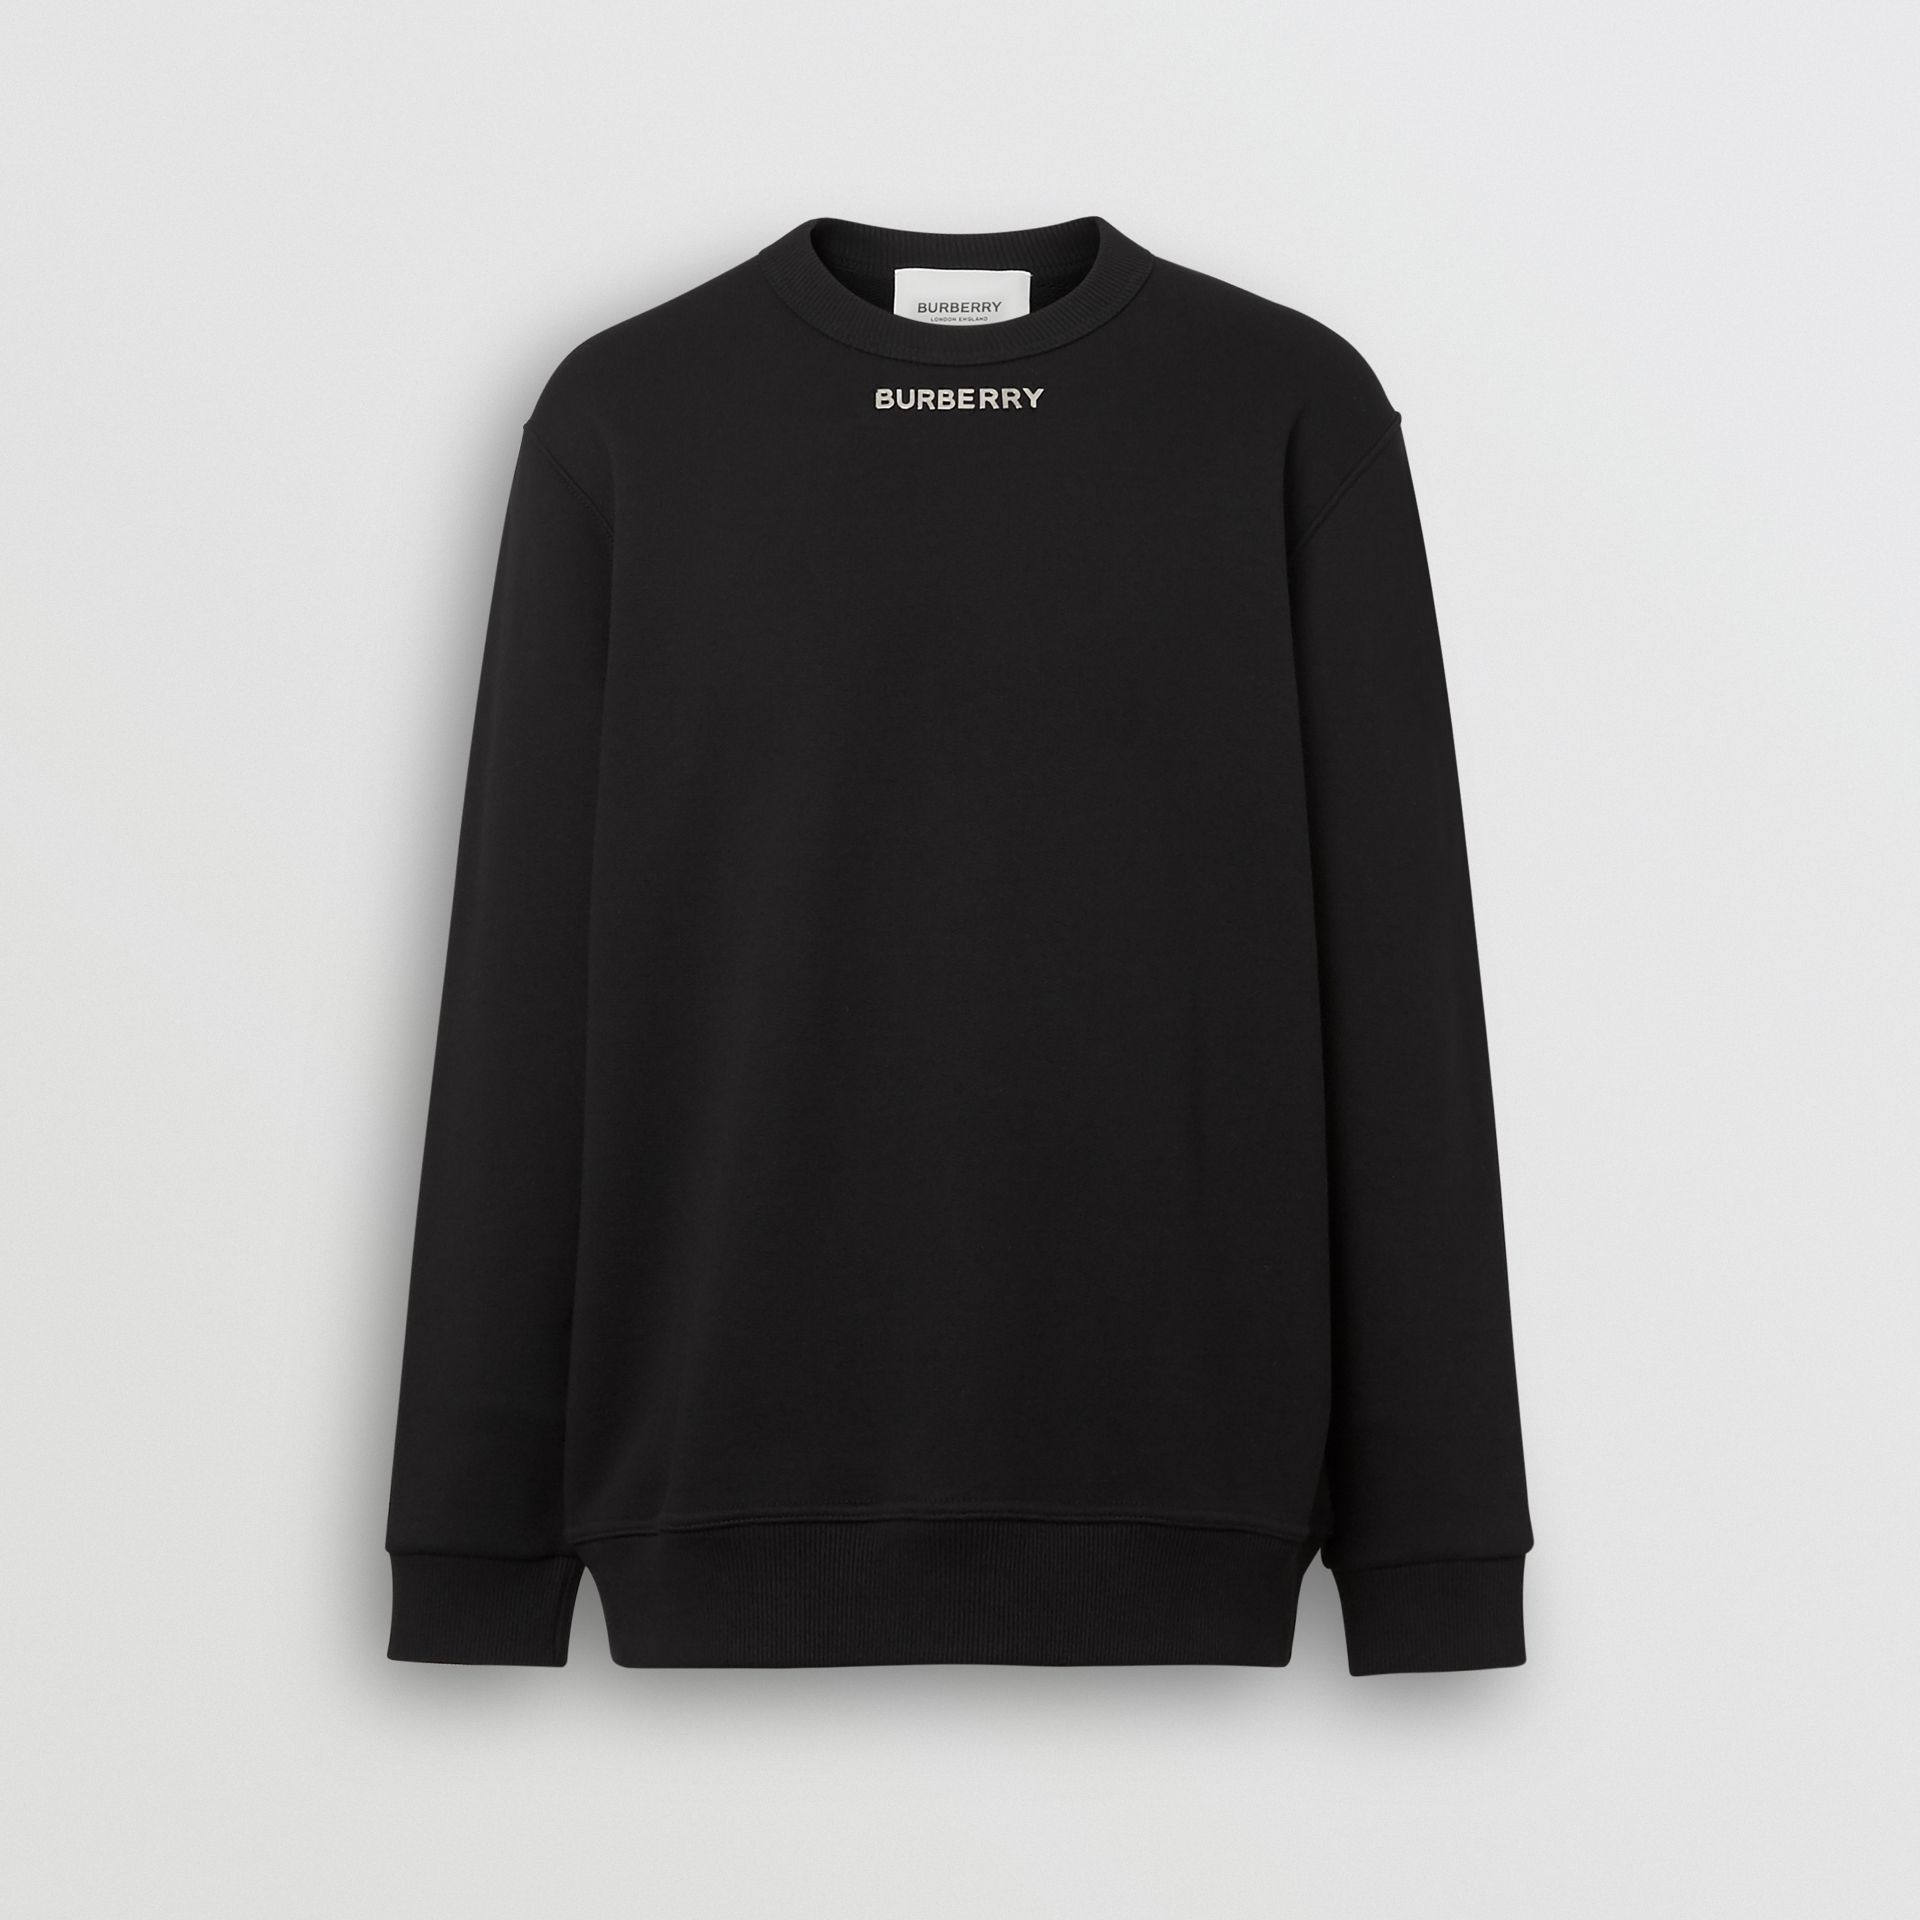 Sweat-shirt avec logo en métal (Noir) - Homme | Burberry - photo de la galerie 2